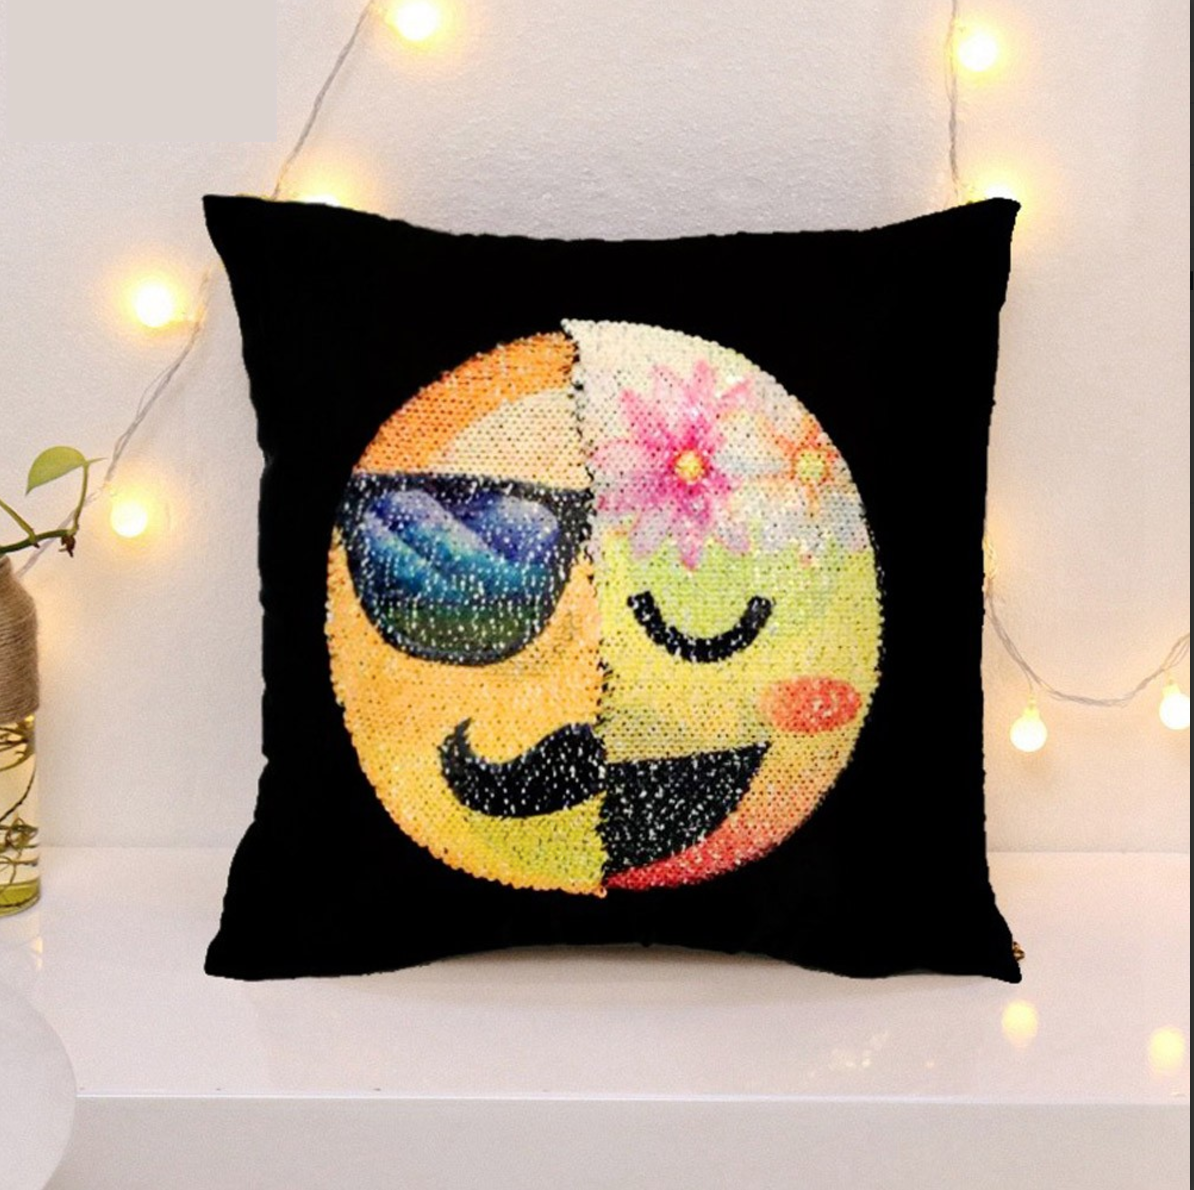 Changing face emoji cushion cover cool demure emotion ware fc